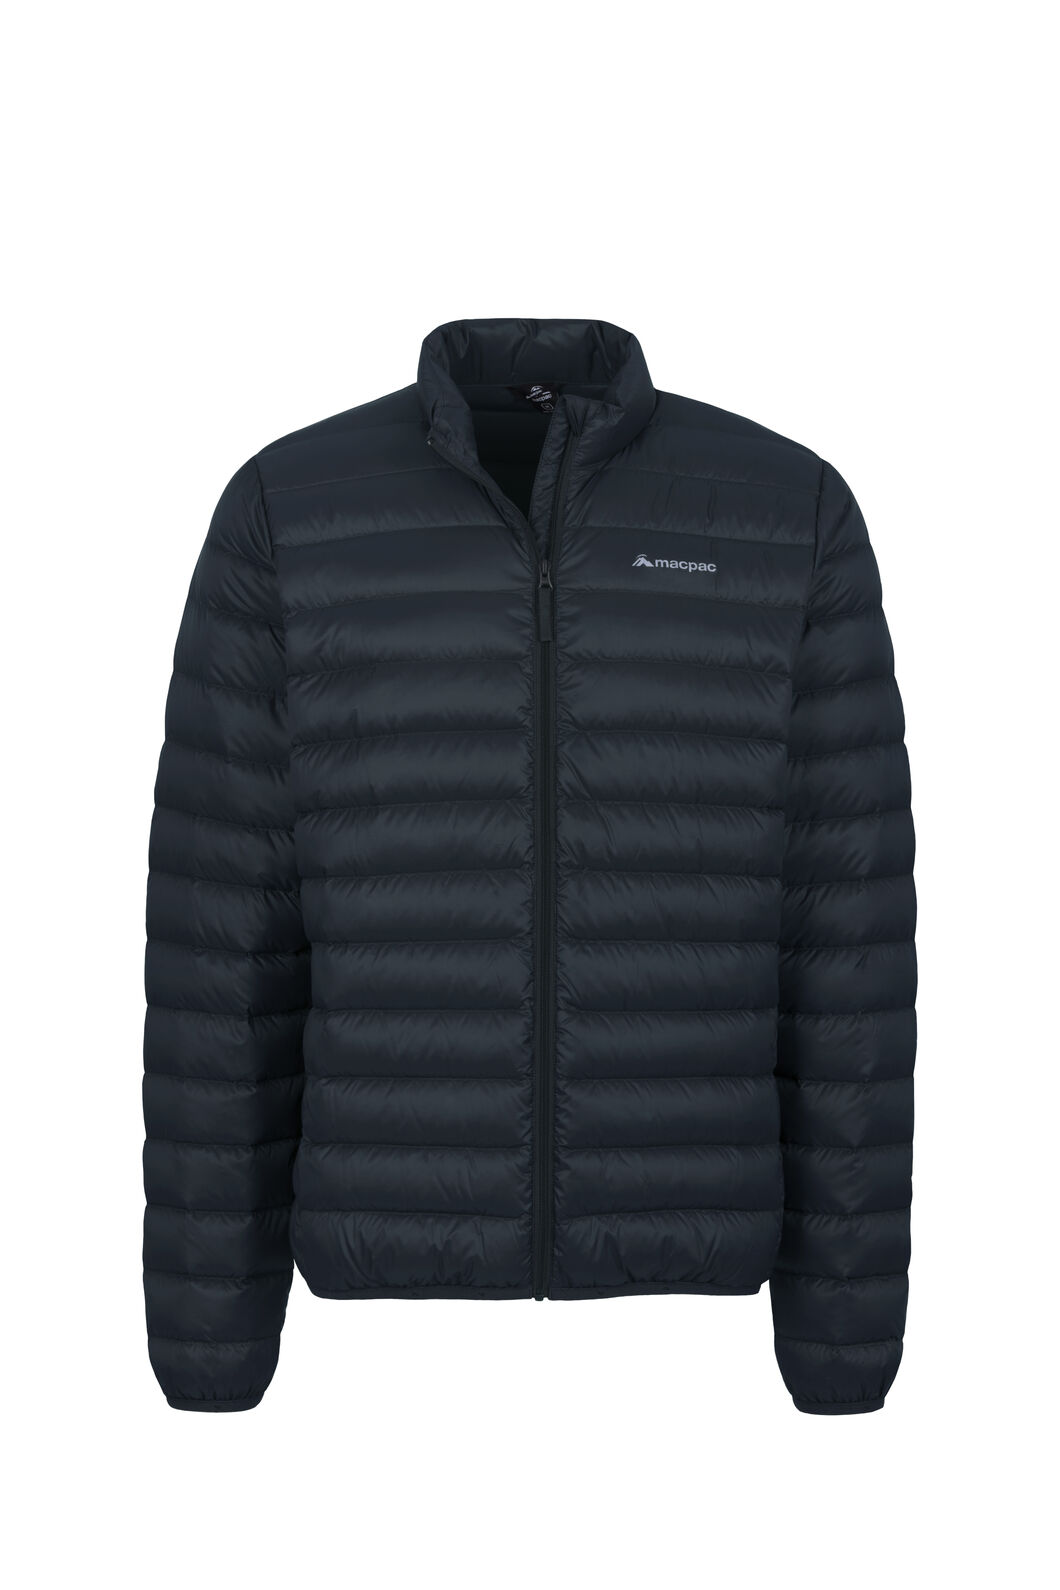 Macpac Uber Light Down Jacket - Men's, Salute, hi-res